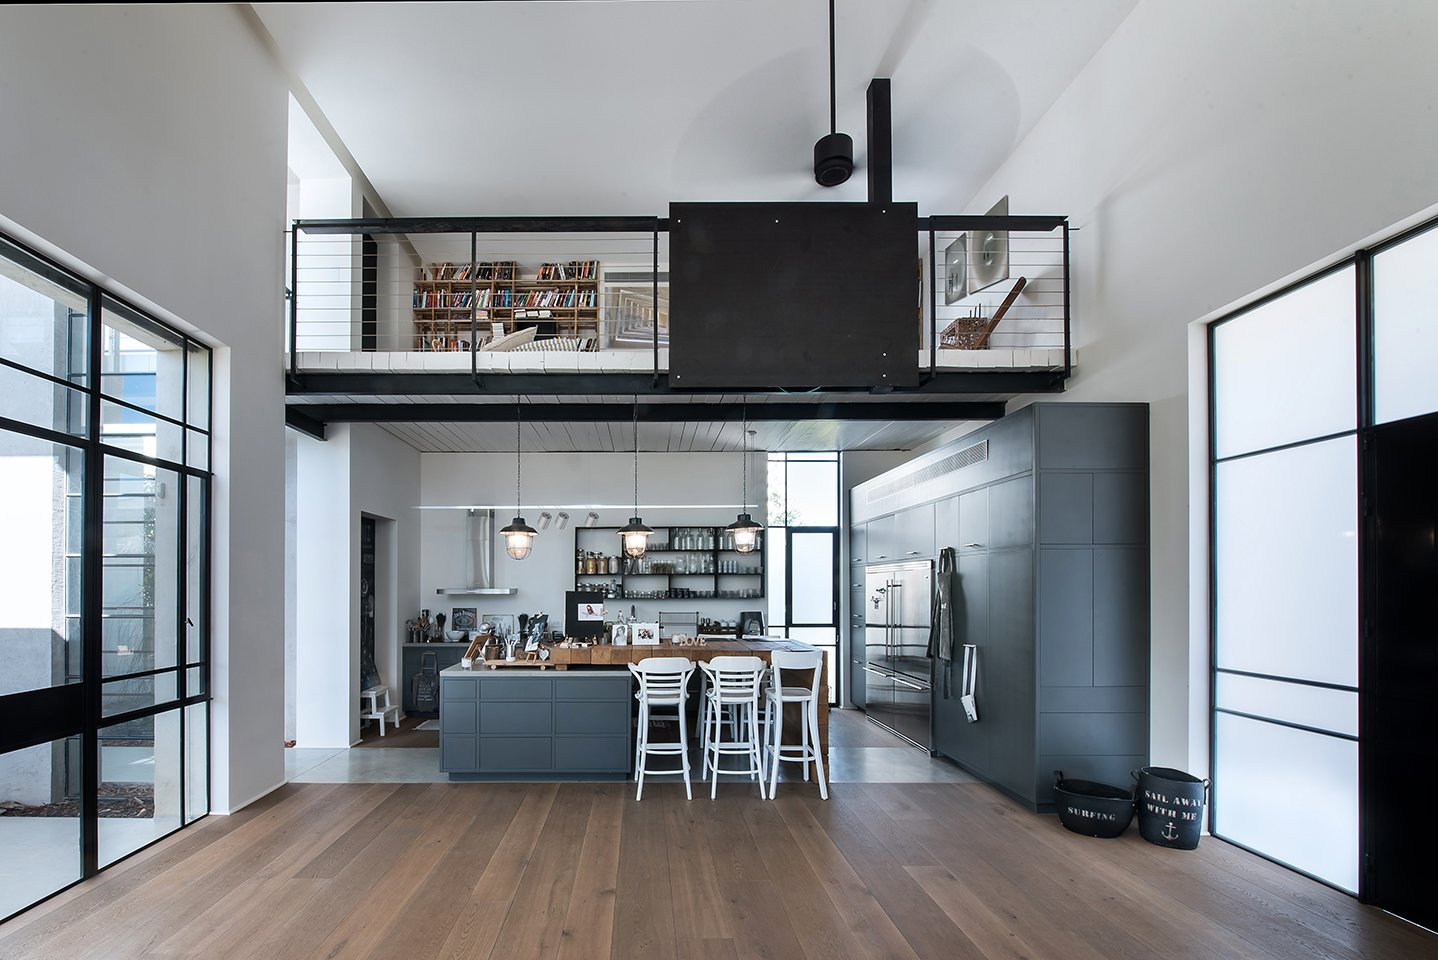 Kitchen, Microwave, Refrigerator, Range Hood, Cooktops, Medium Hardwood, Dishwasher, Wall Oven, Concrete, Ceiling, Concrete, Wine Cooler, Range, and Colorful  Best Kitchen Microwave Range Hood Ceiling Cooktops Colorful Photos from savion house